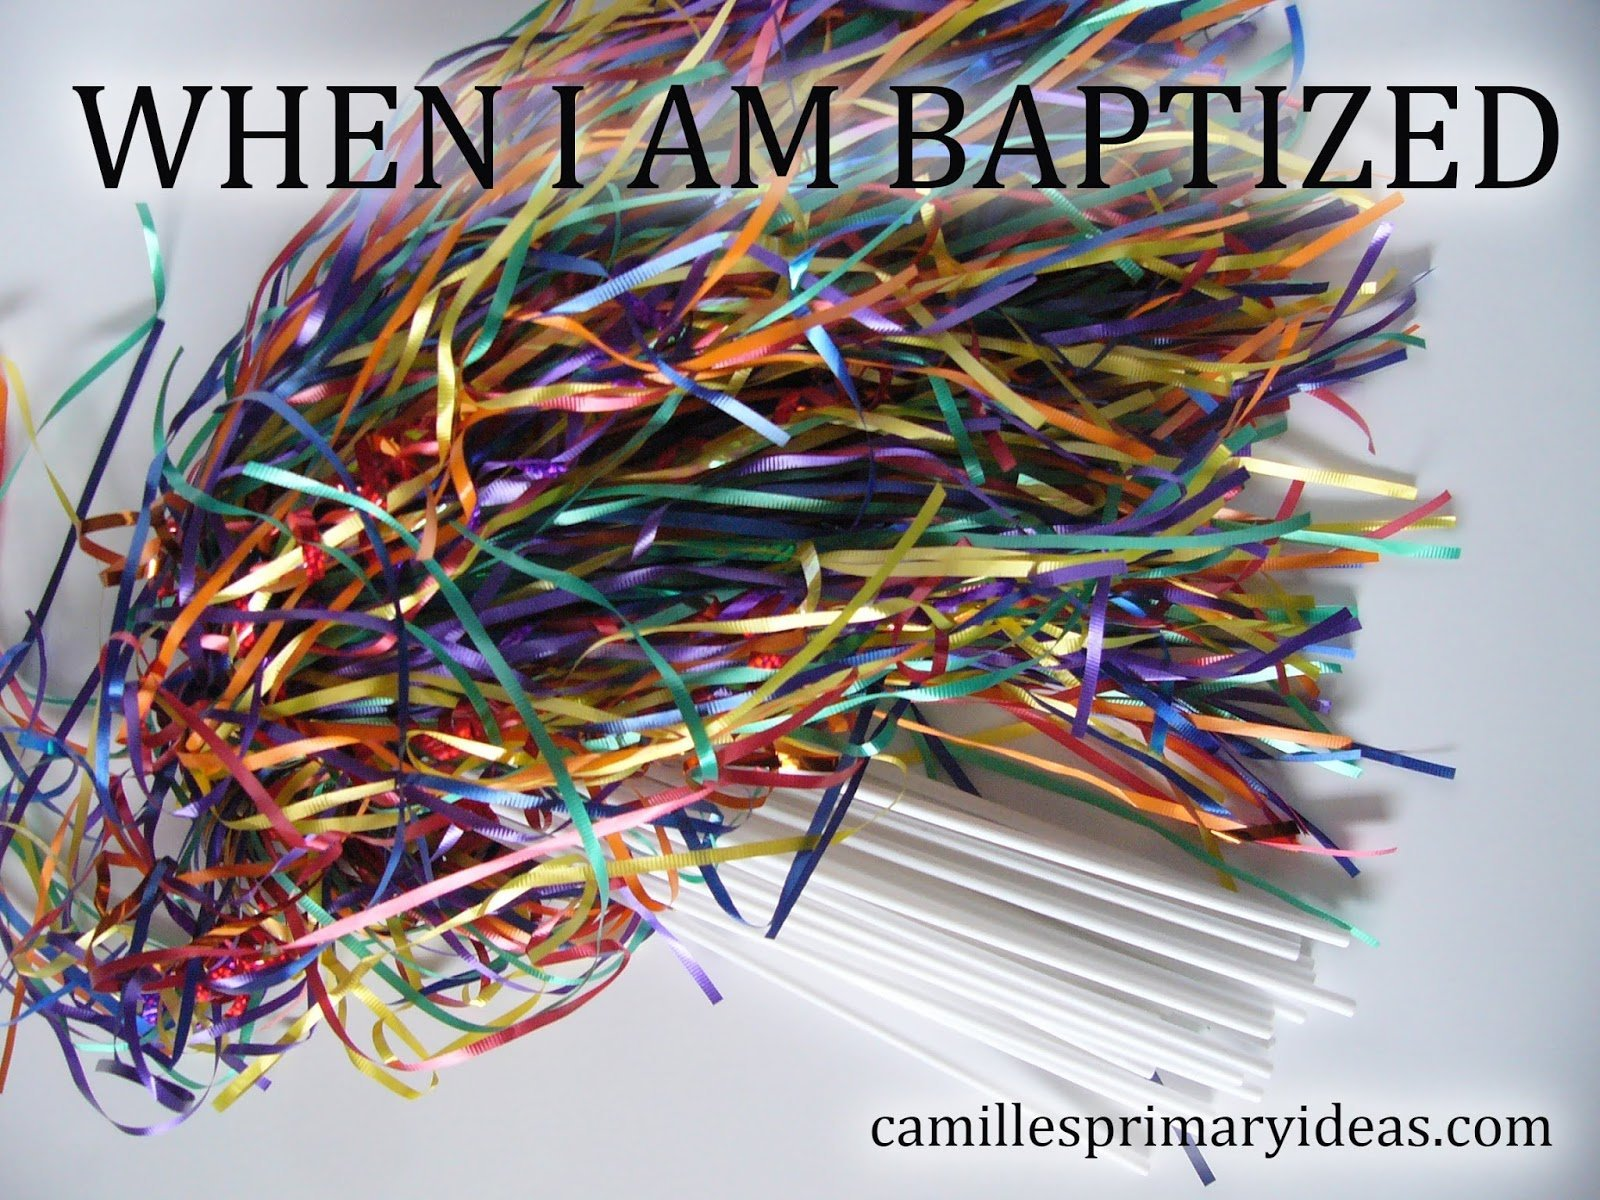 Camille's Primary Ideas singing time lesson plan for When I Am Baptized